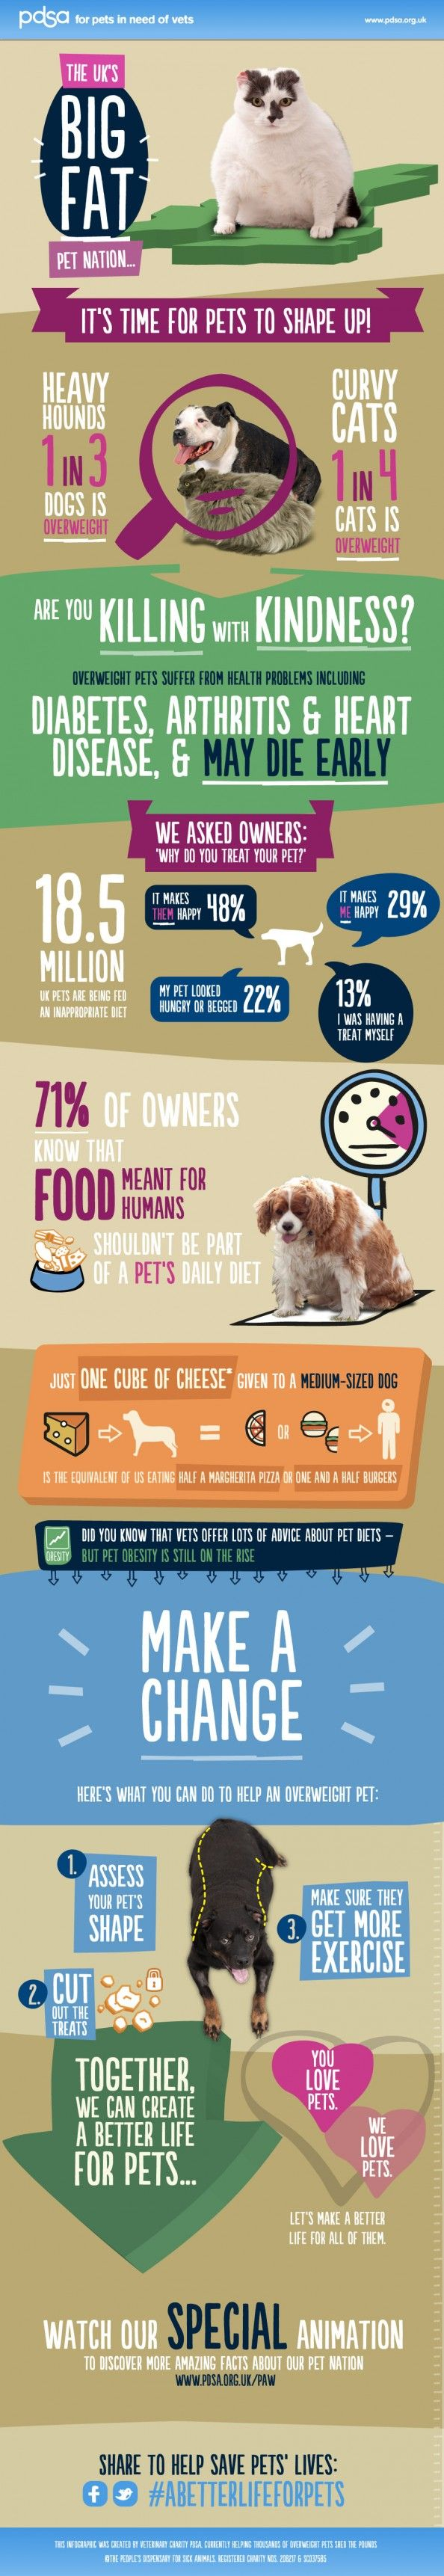 Big Fat Pet Nation: Obese Pets in The UK Facts Infographic #pets #dogs #cats